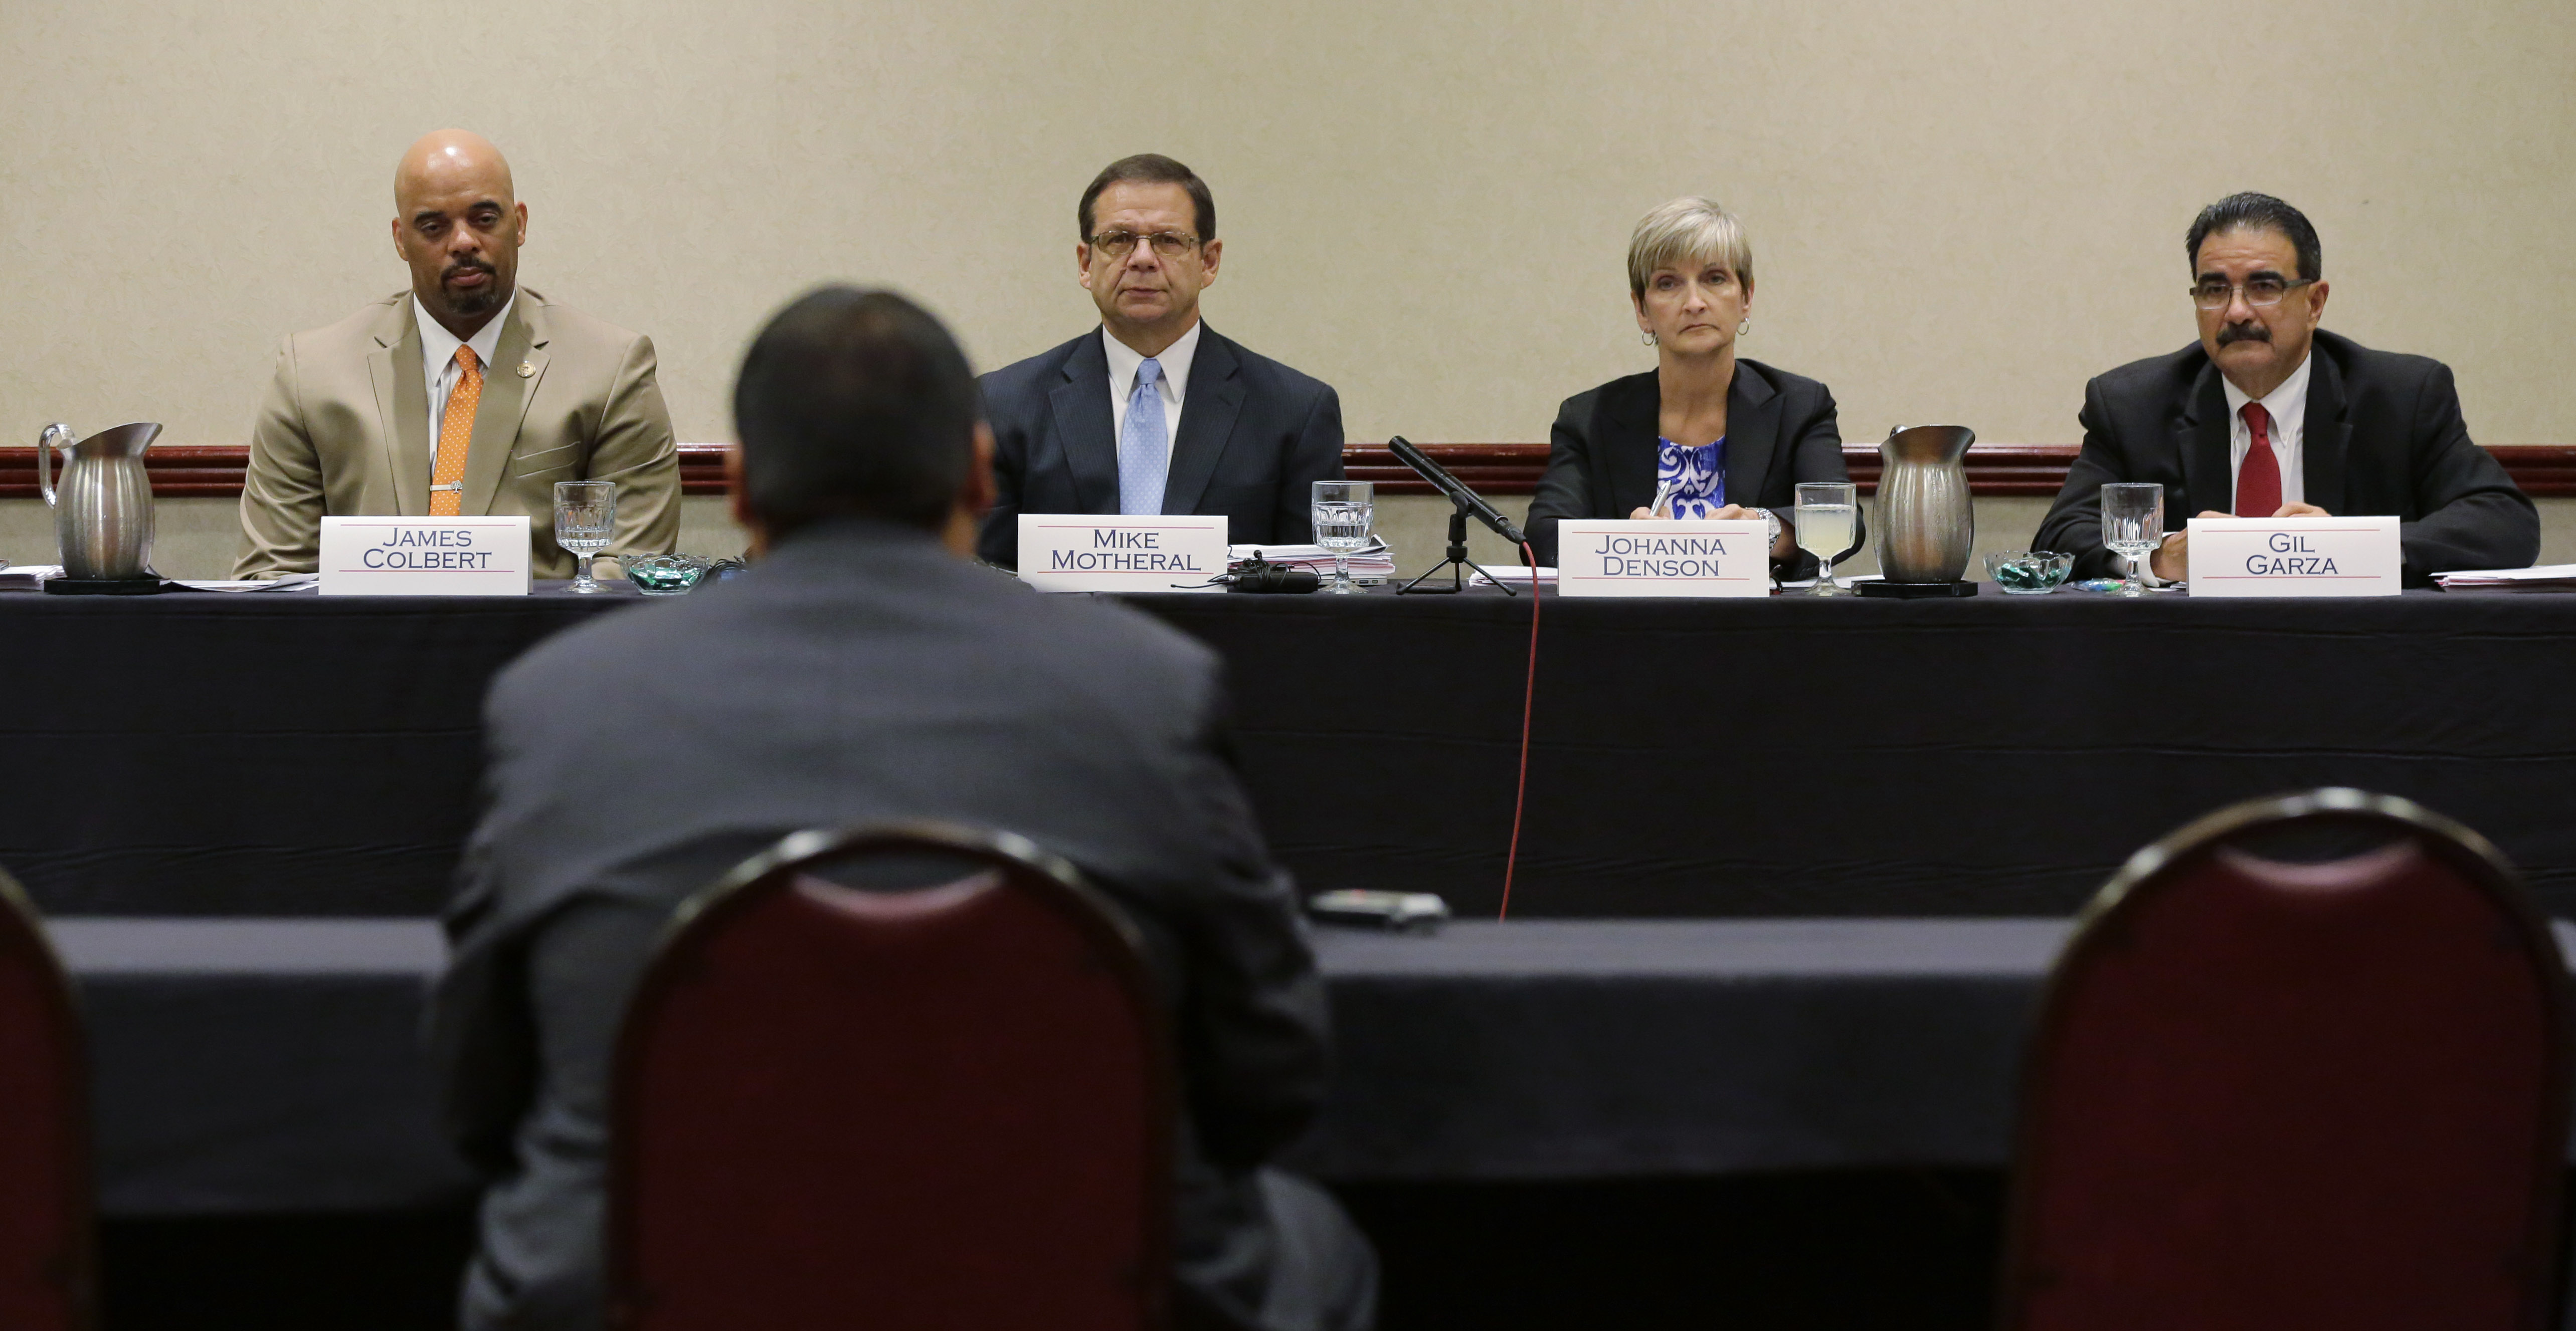 Jay High School head football coach Gary Gutierrez testifies before the University Interscholastic League (UIL) State Executive Committee, Thursday, Sept. 24, 2015, in Round Rock, Texas. (Photo: Eric Gay, AP)